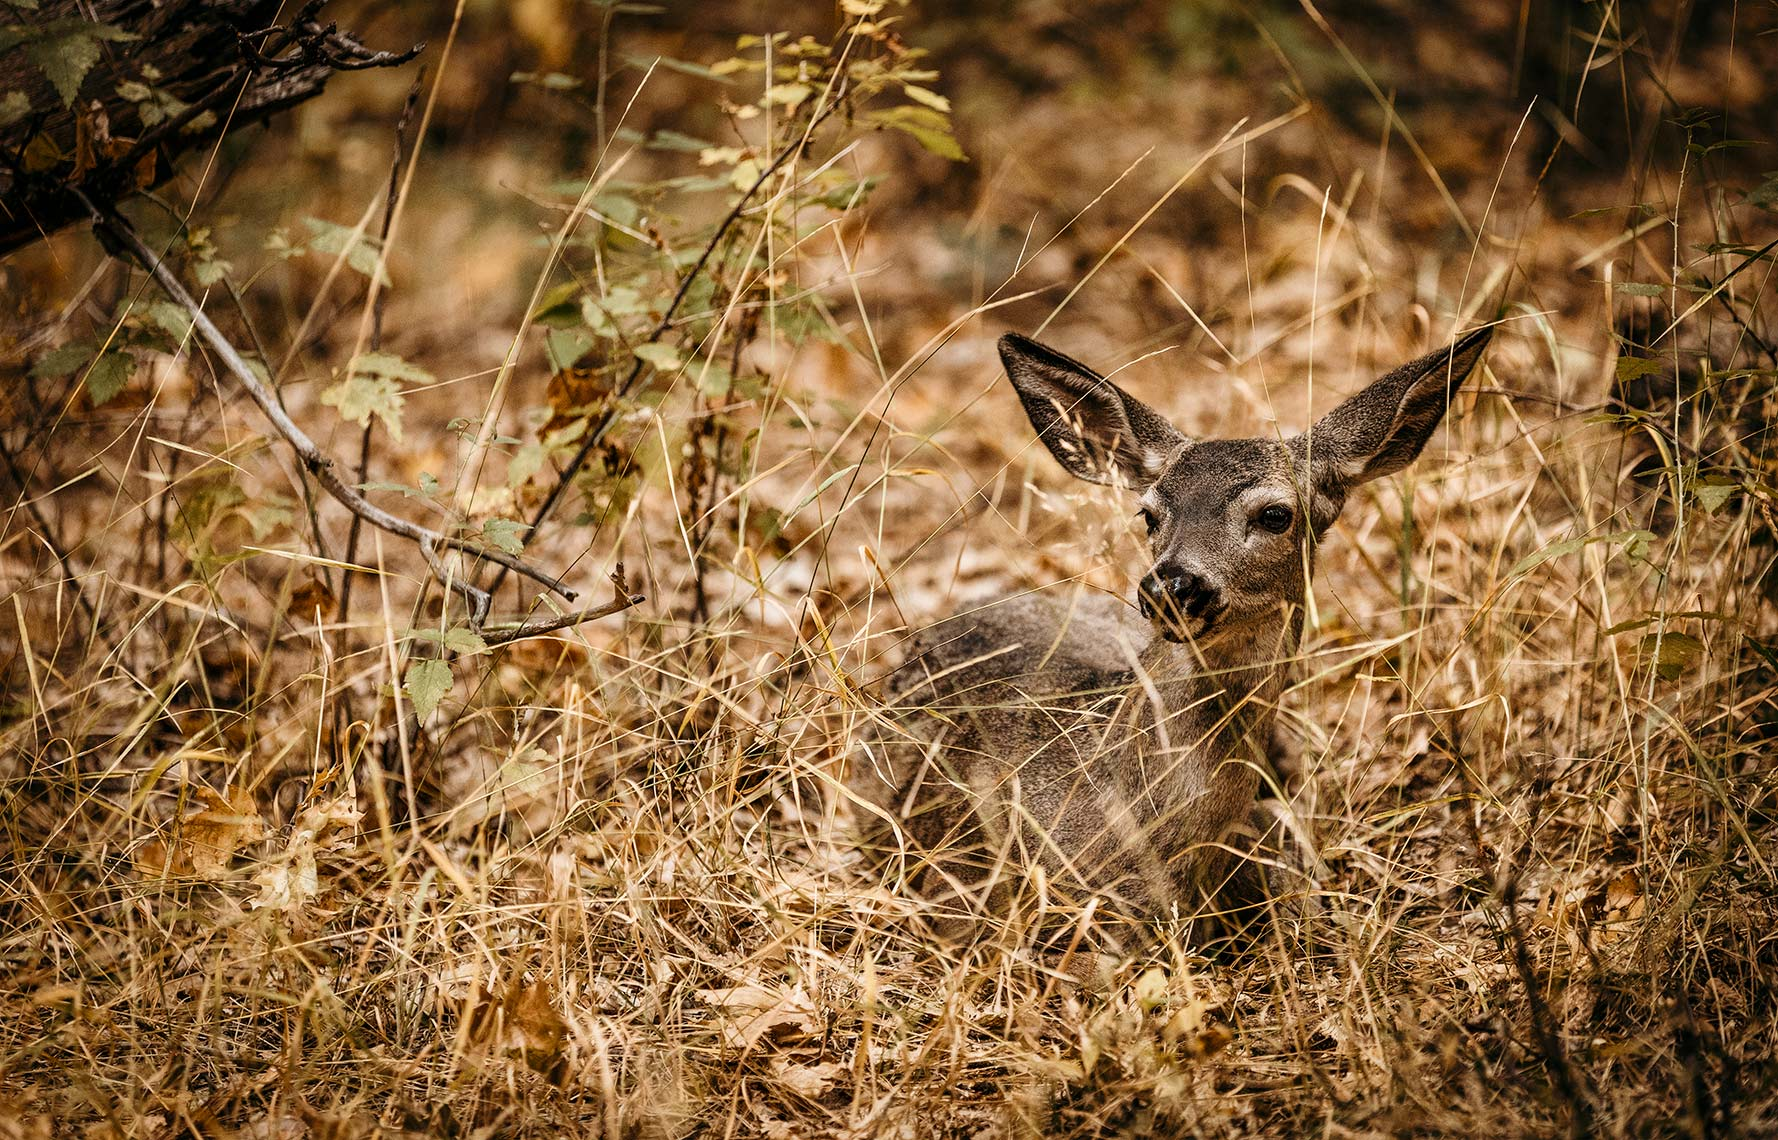 MULEDEER-IN-GRASS_YOSEMITE